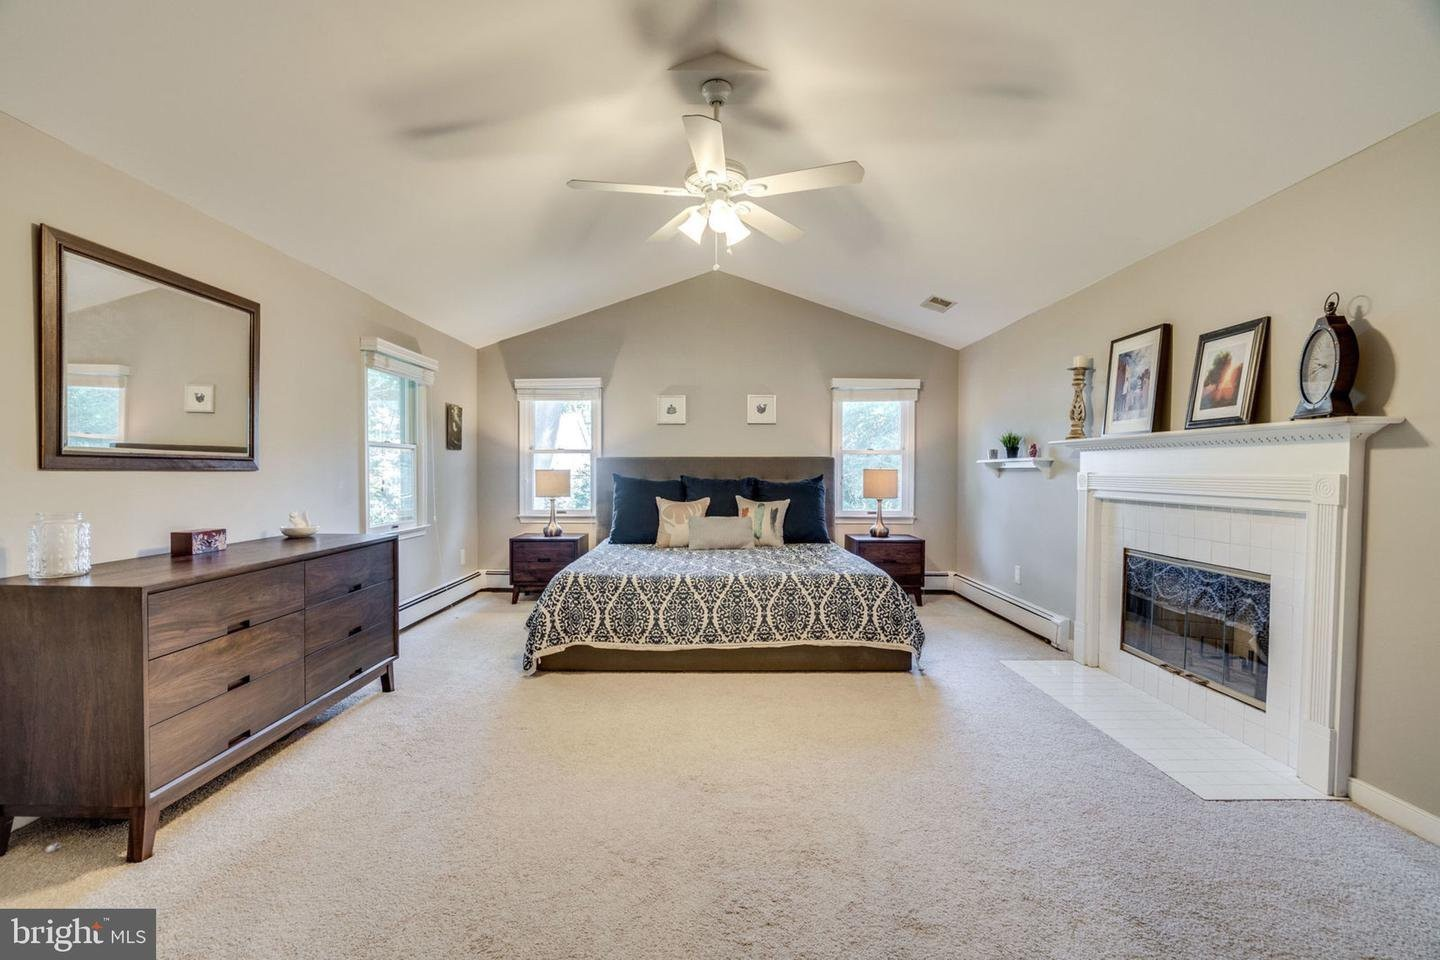 Homes For Sale Del Ray